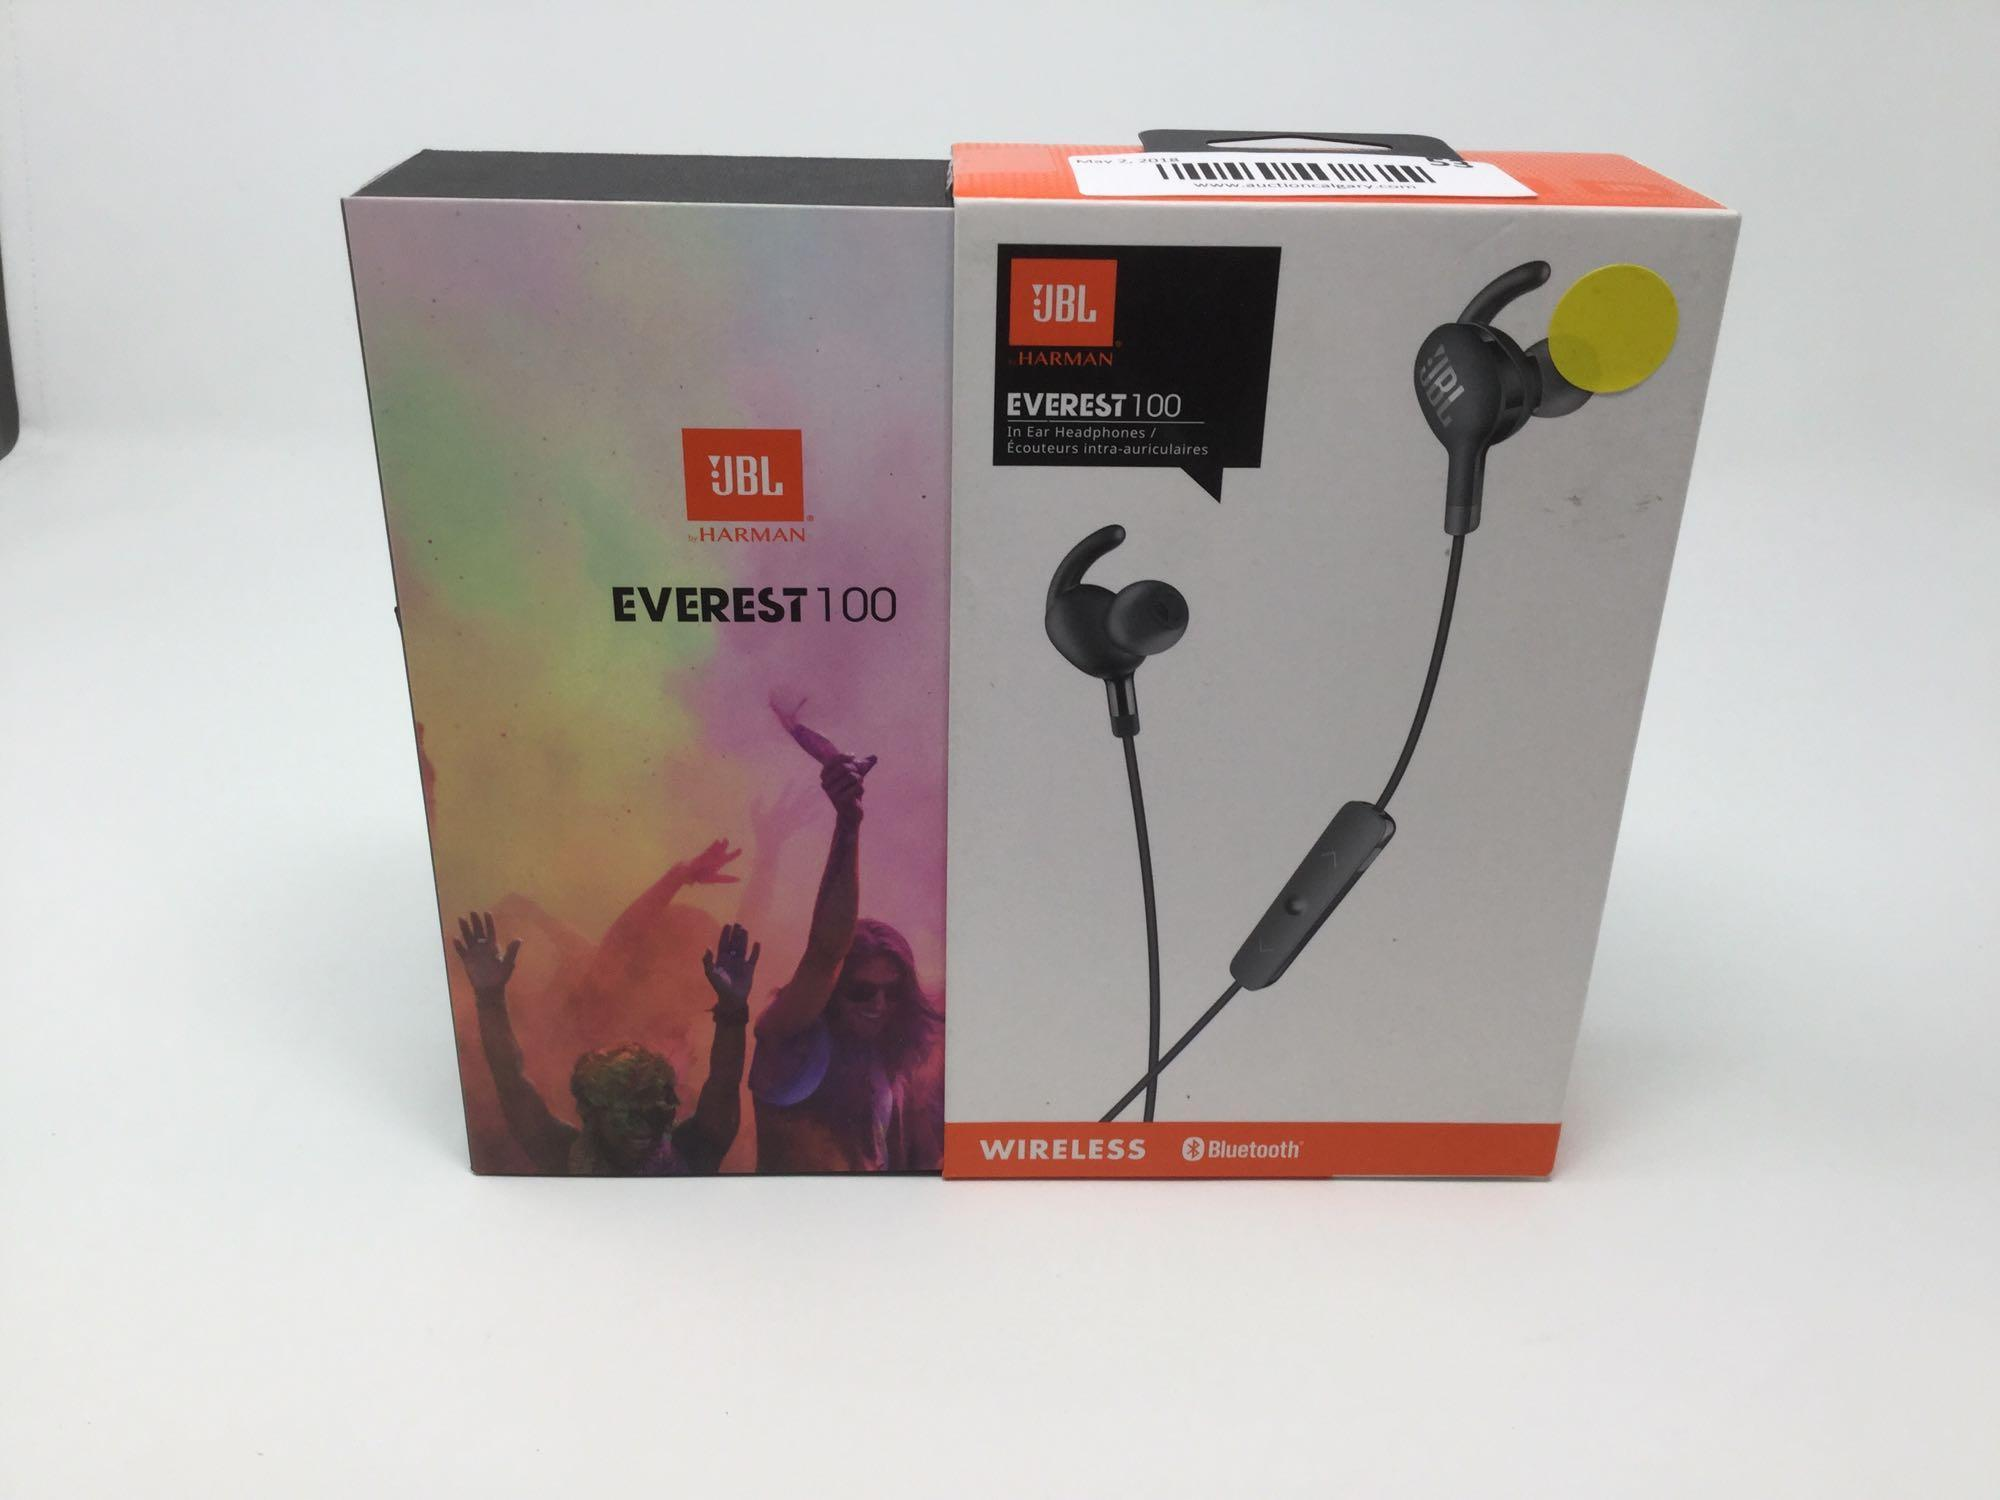 Lot 53 - Everest 100 - In-ear Headphones  Wireless Bluetooth